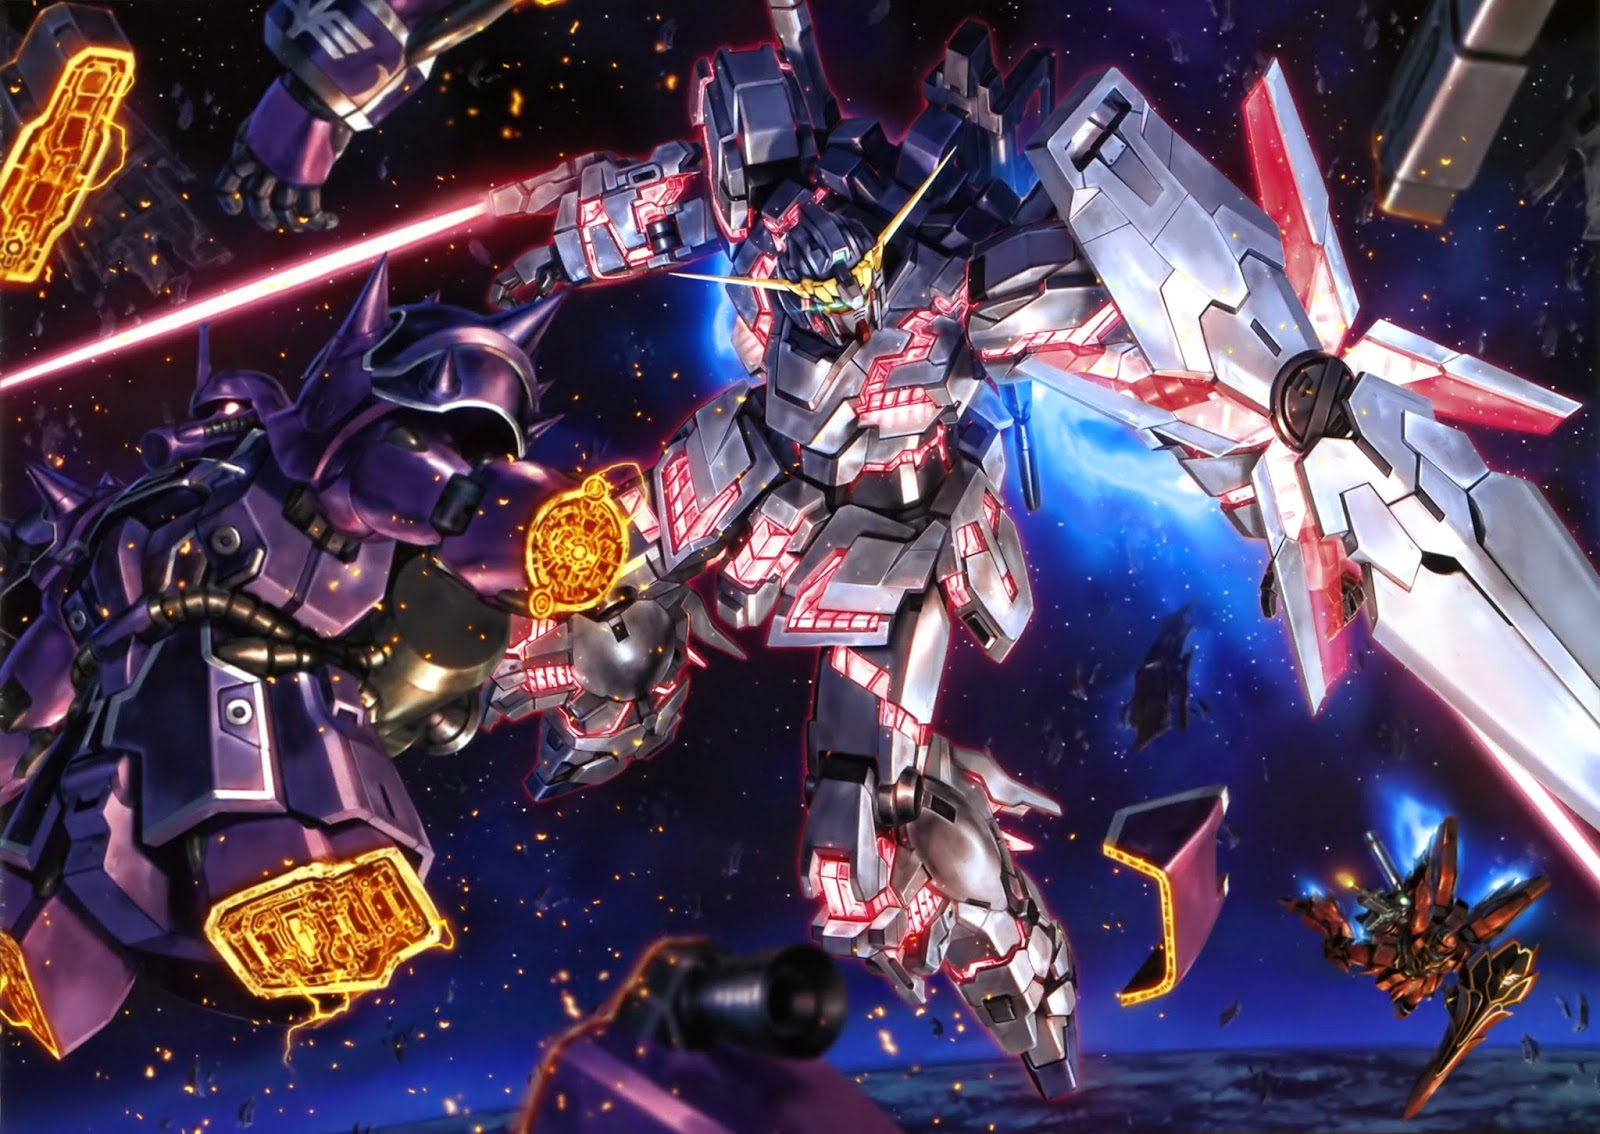 ReefTV: Anime Review : Mobile Suit Gundam Unicorn